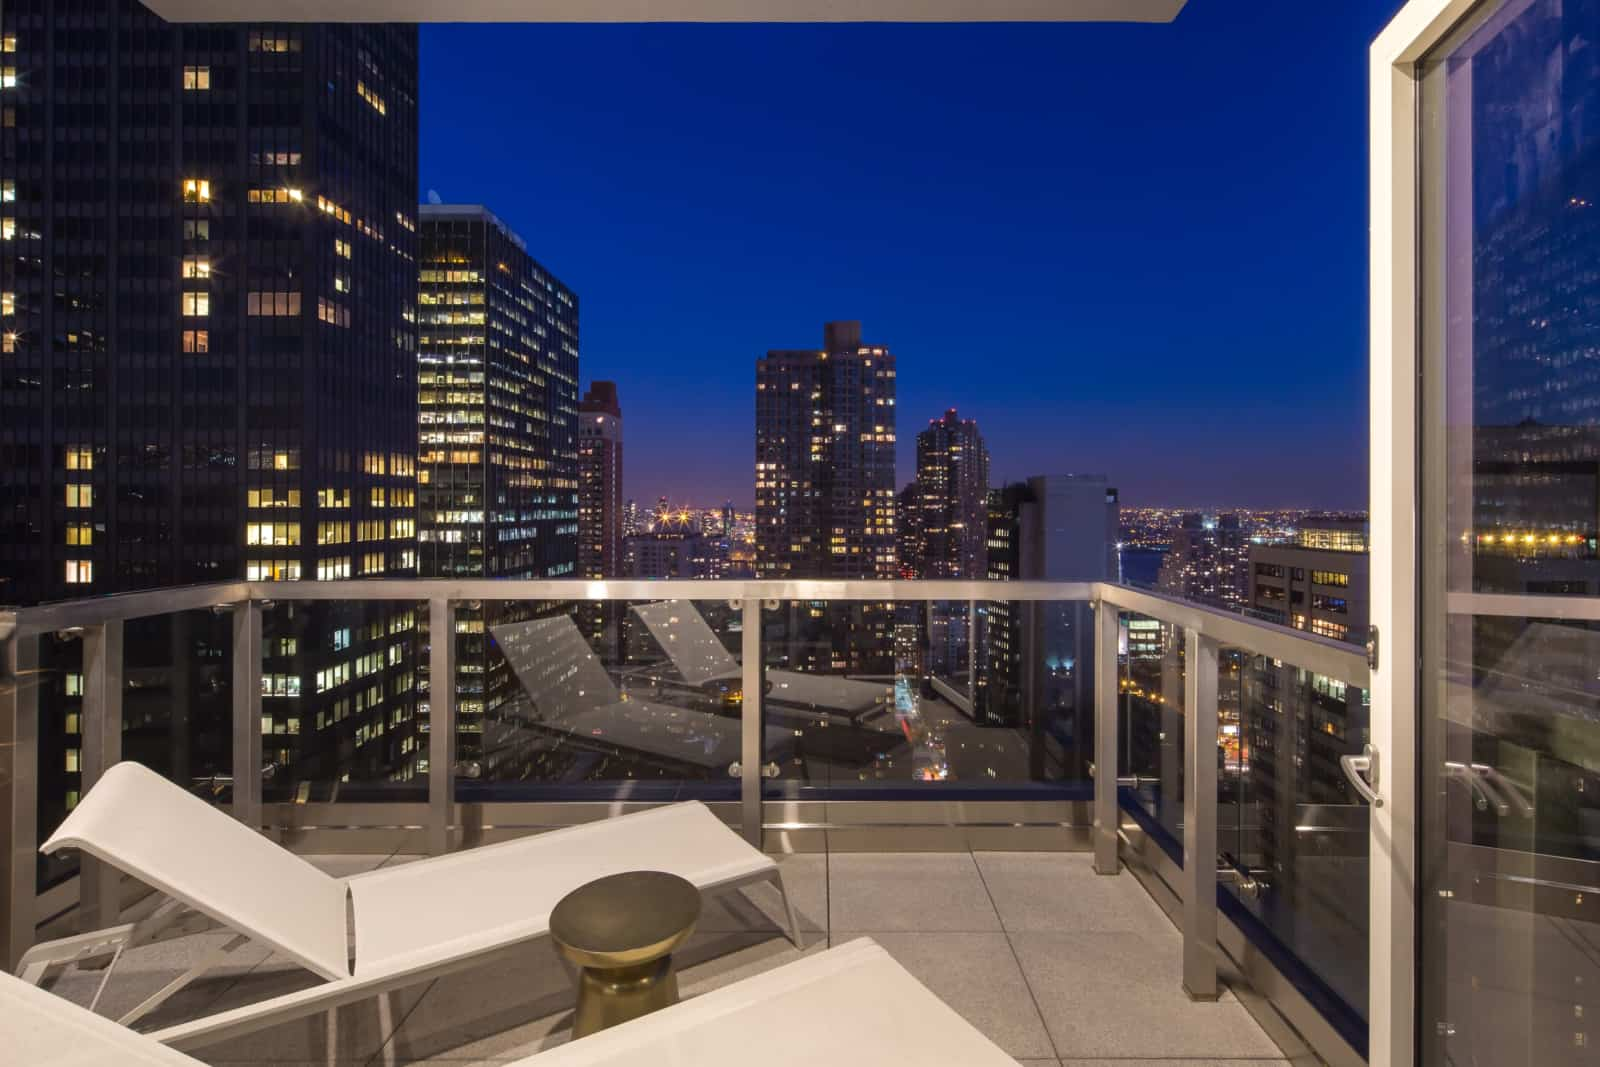 Apartment balcony with lounge chairs overlooking cityscape.